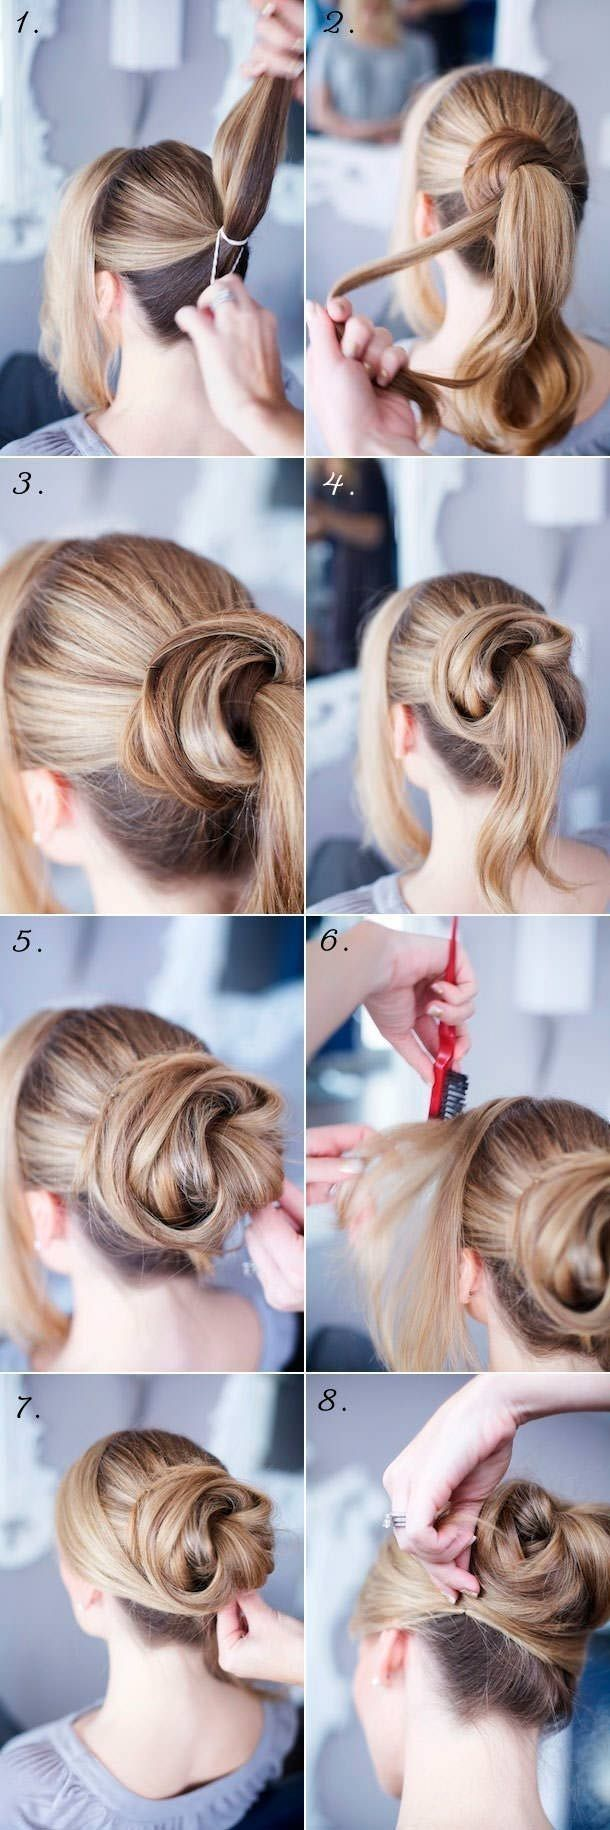 Bun Updo Hairstyles Tutorials. Hey! One I can actually follow :D